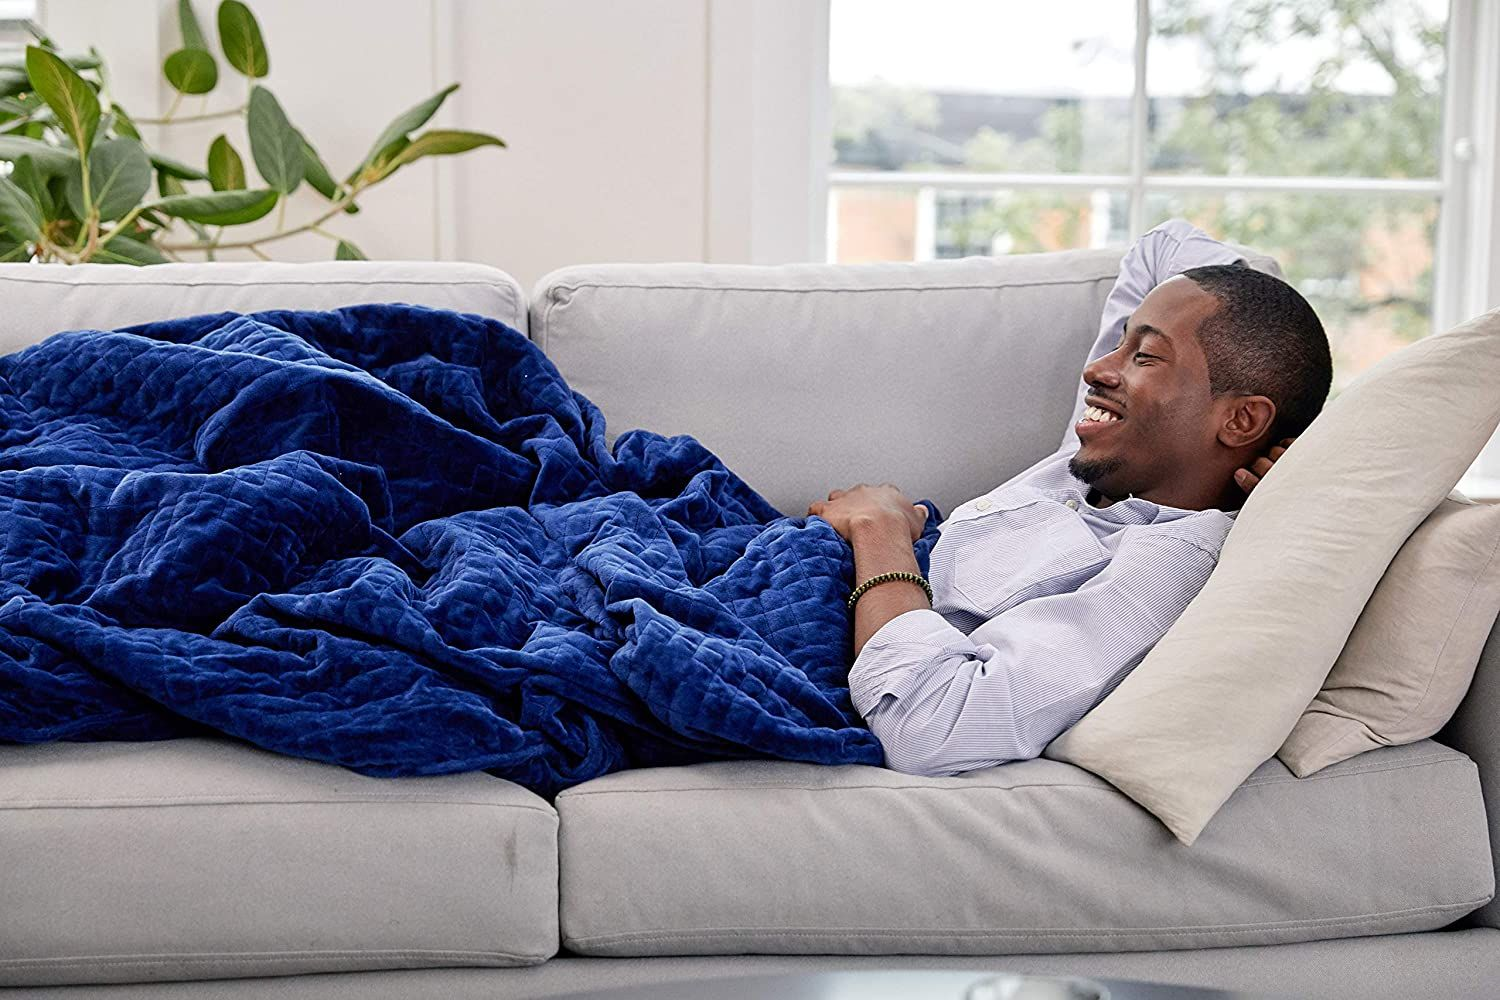 Top 10 Best Cooling Blankets For Sleeping In 2020 In 2020